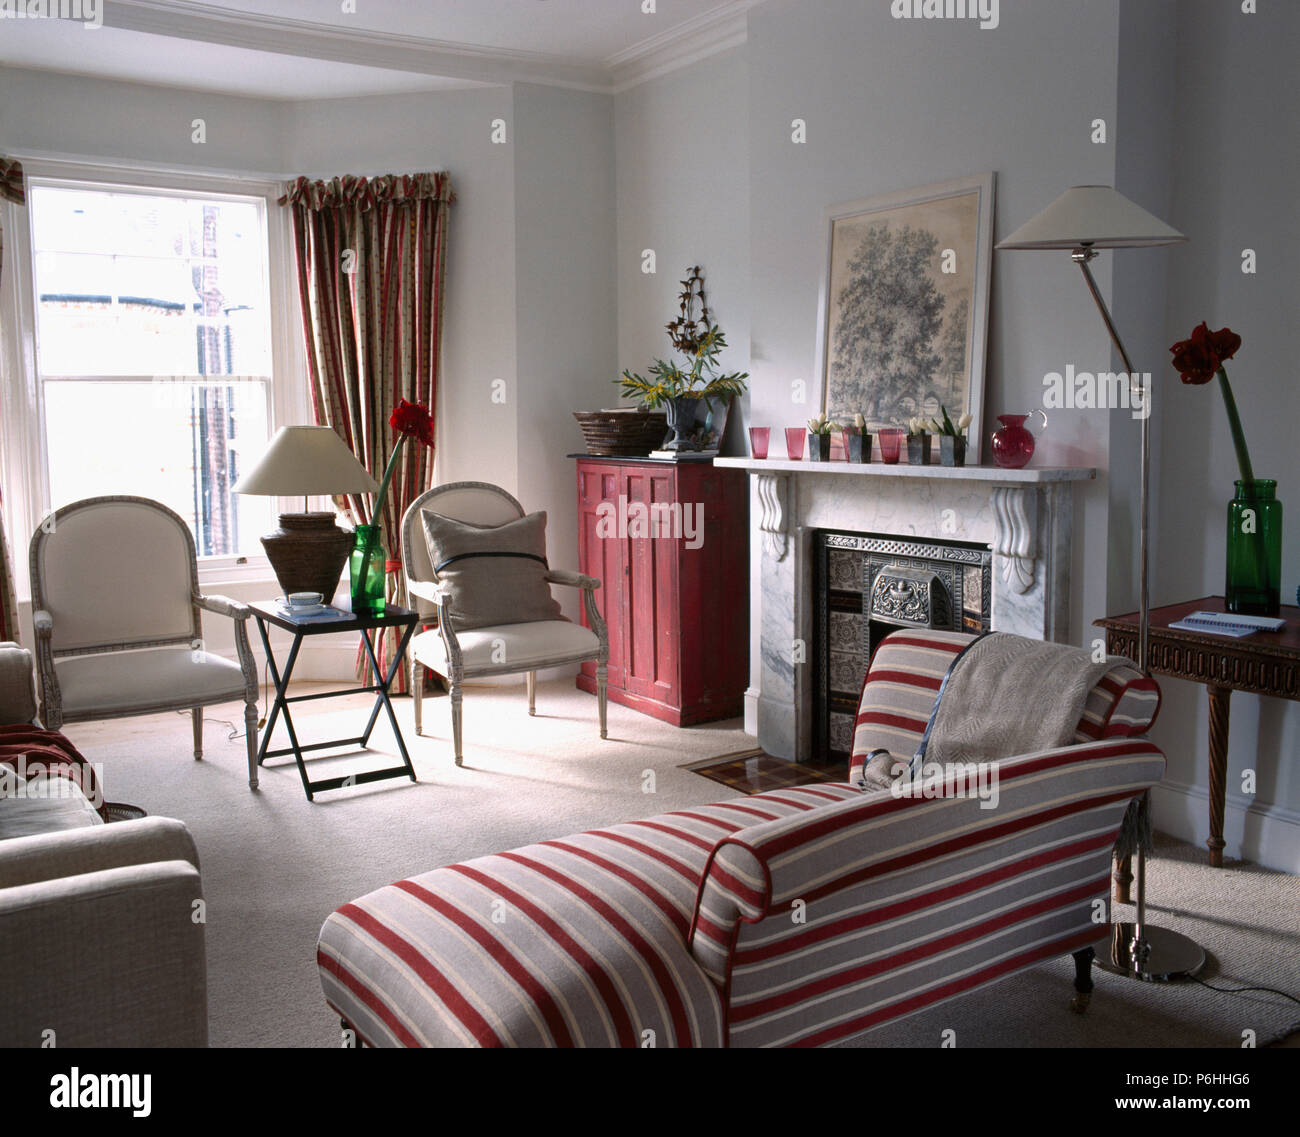 Red Striped Chaise Longue And In Town House Living Room With A Marble Fireplace